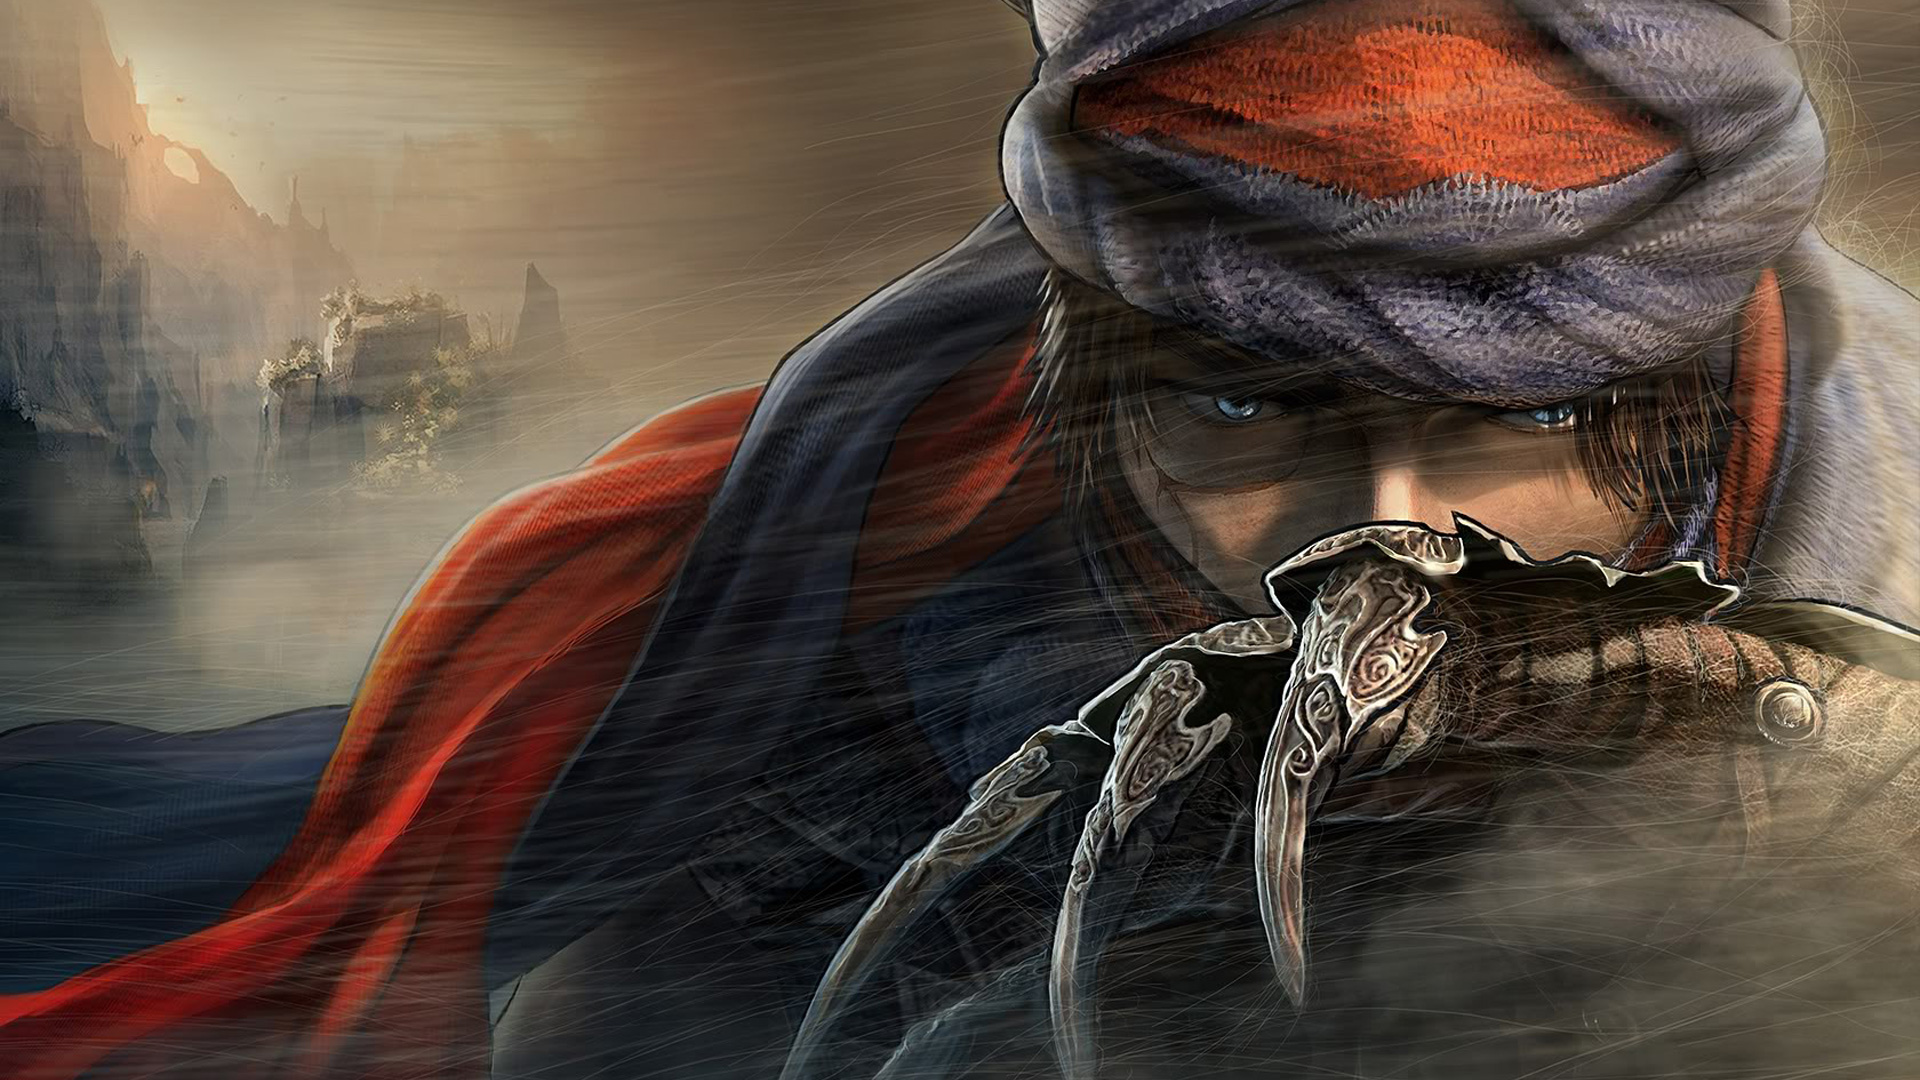 Free Prince of Persia Wallpaper in 1920x1080